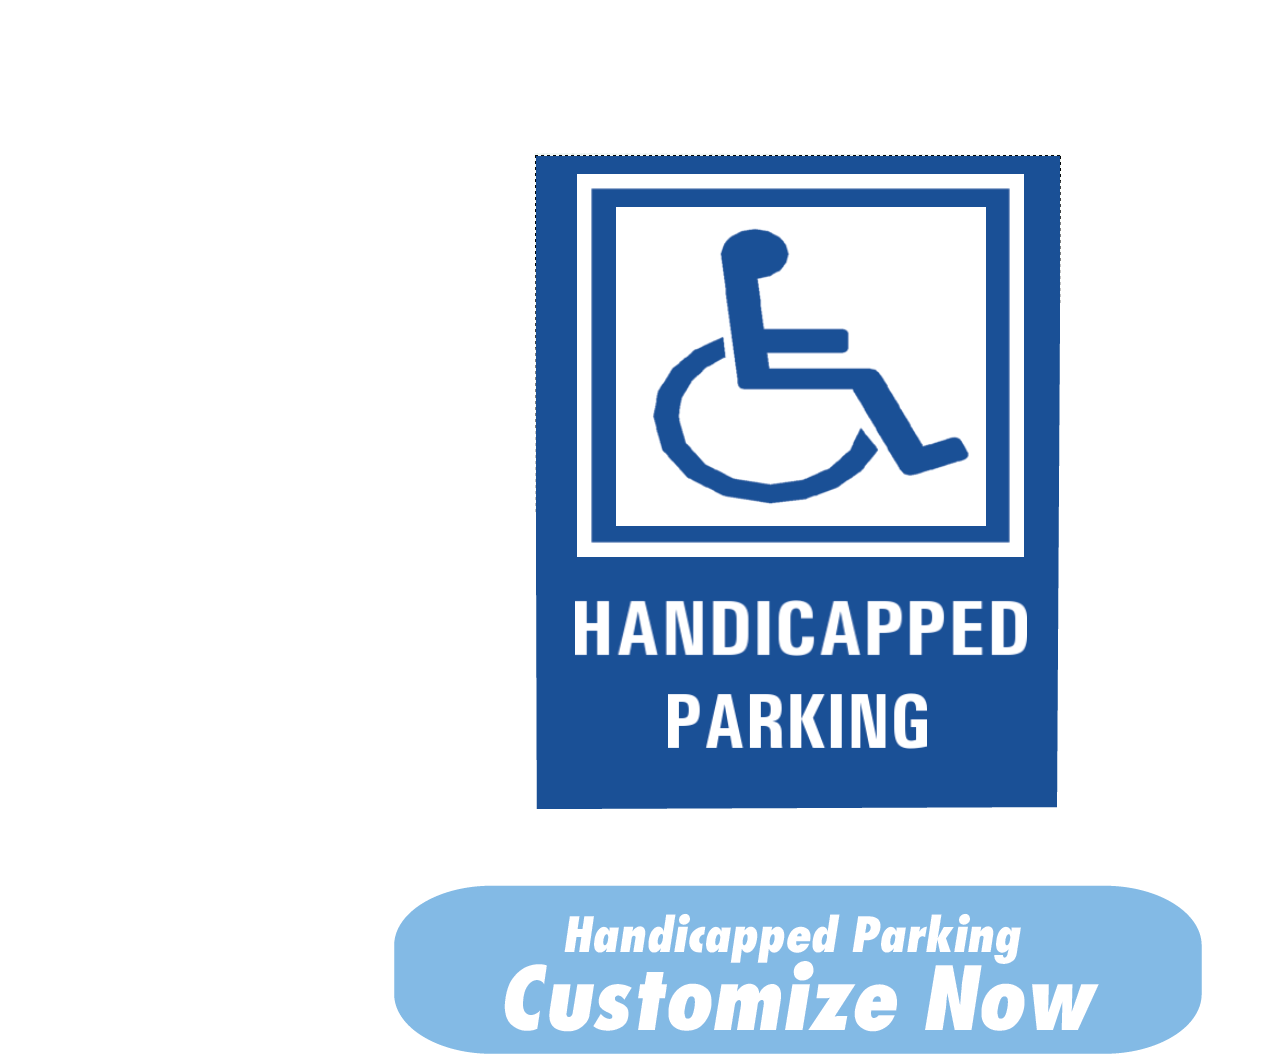 Handicapped Parking - Customize Now